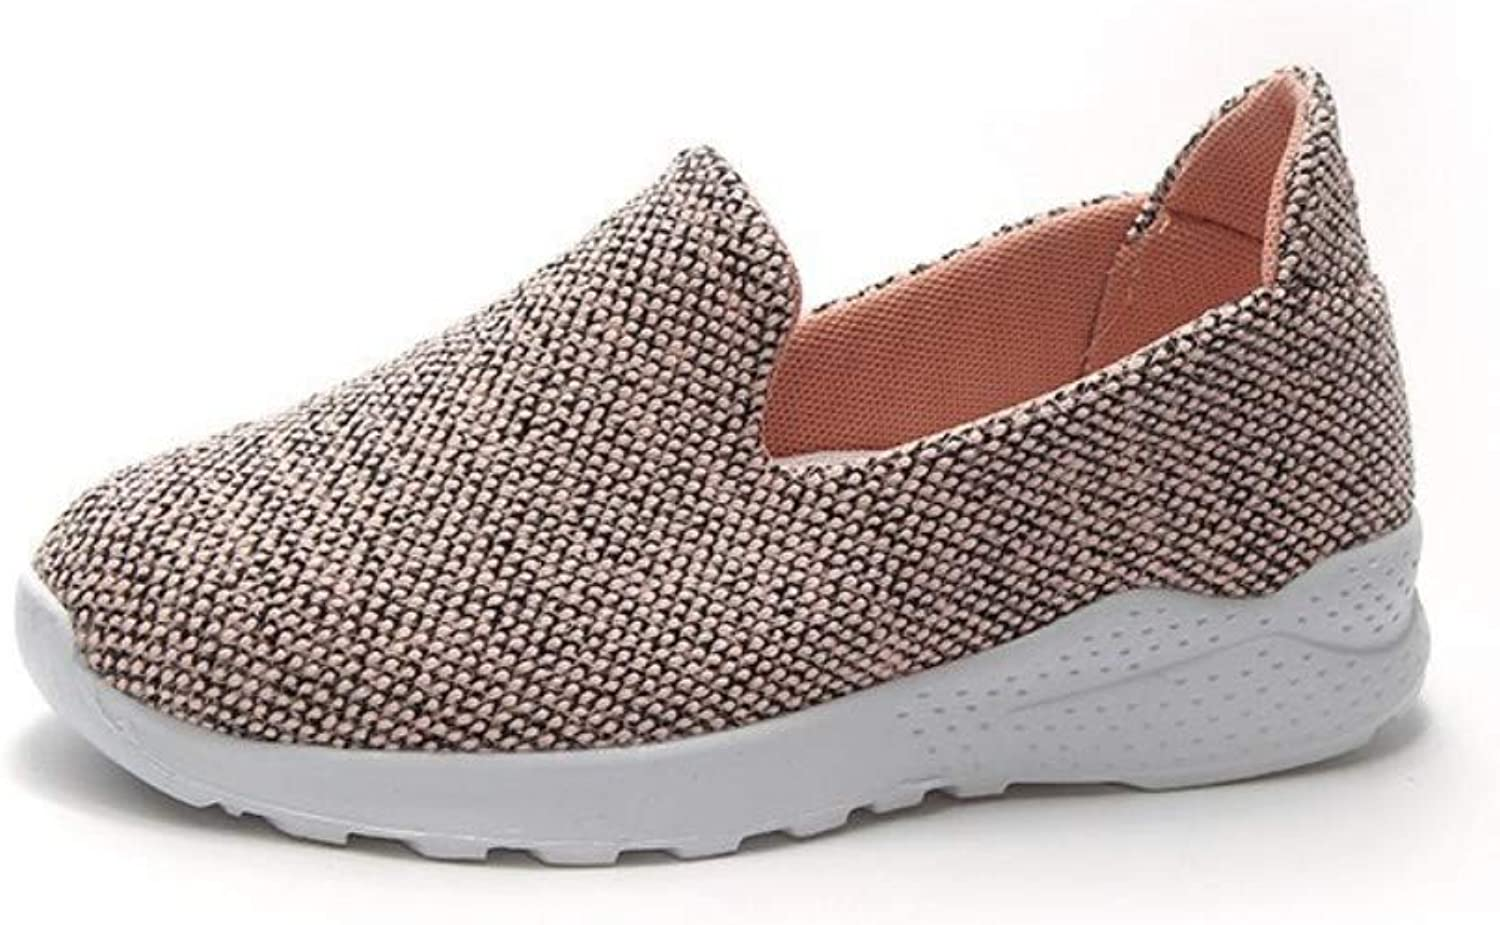 ZHIJINLI Casual shoes, sports shoes, shoes, lazy shoes, one foot, shoes, breathable, muffin, comfortable, 37EU